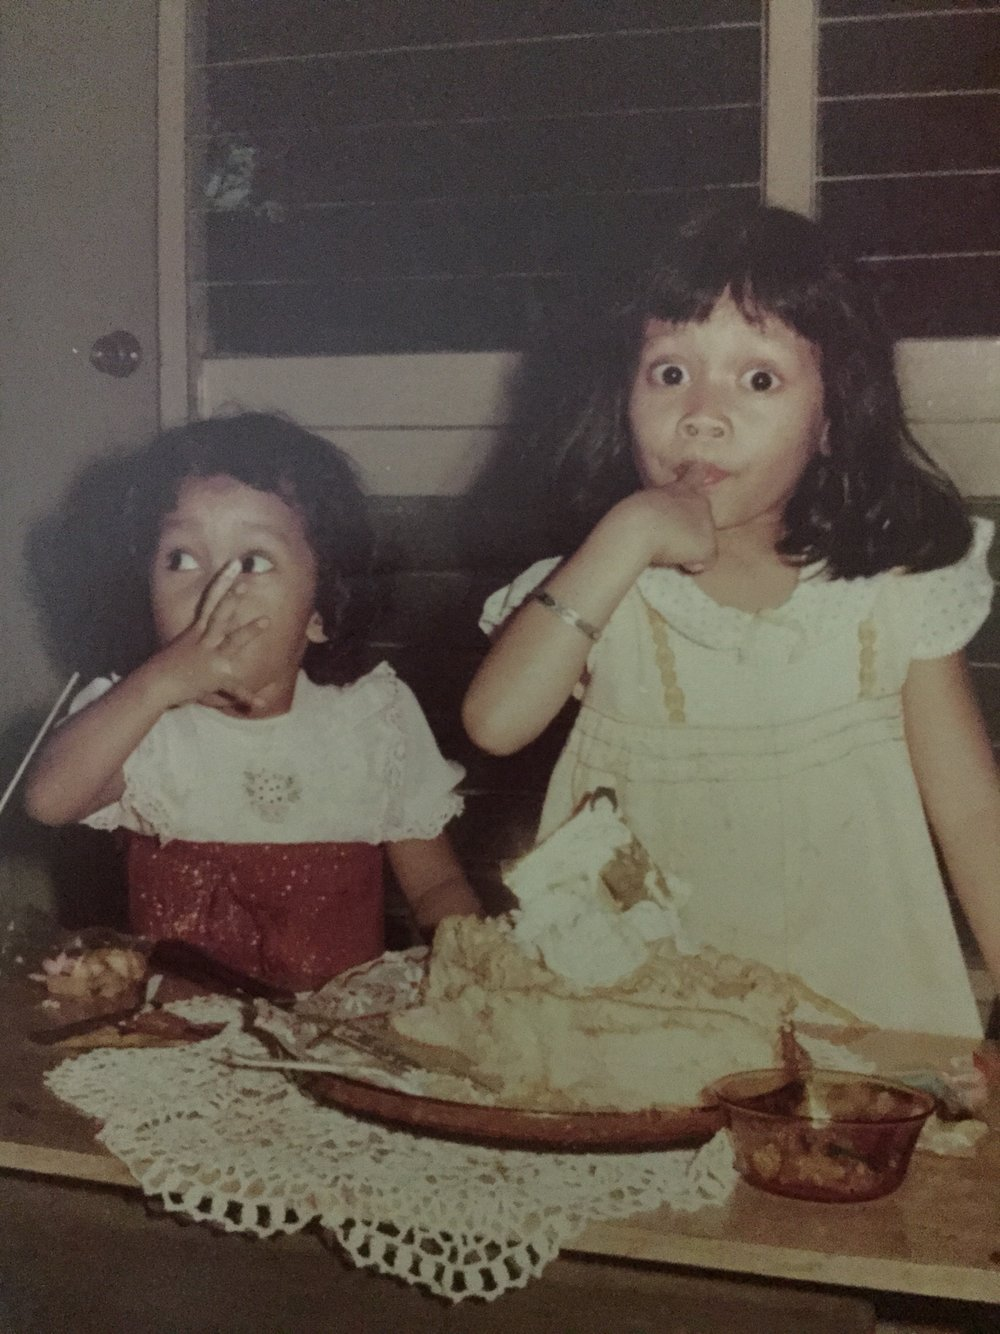 Me and lil' sis enjoying my birthday cake.